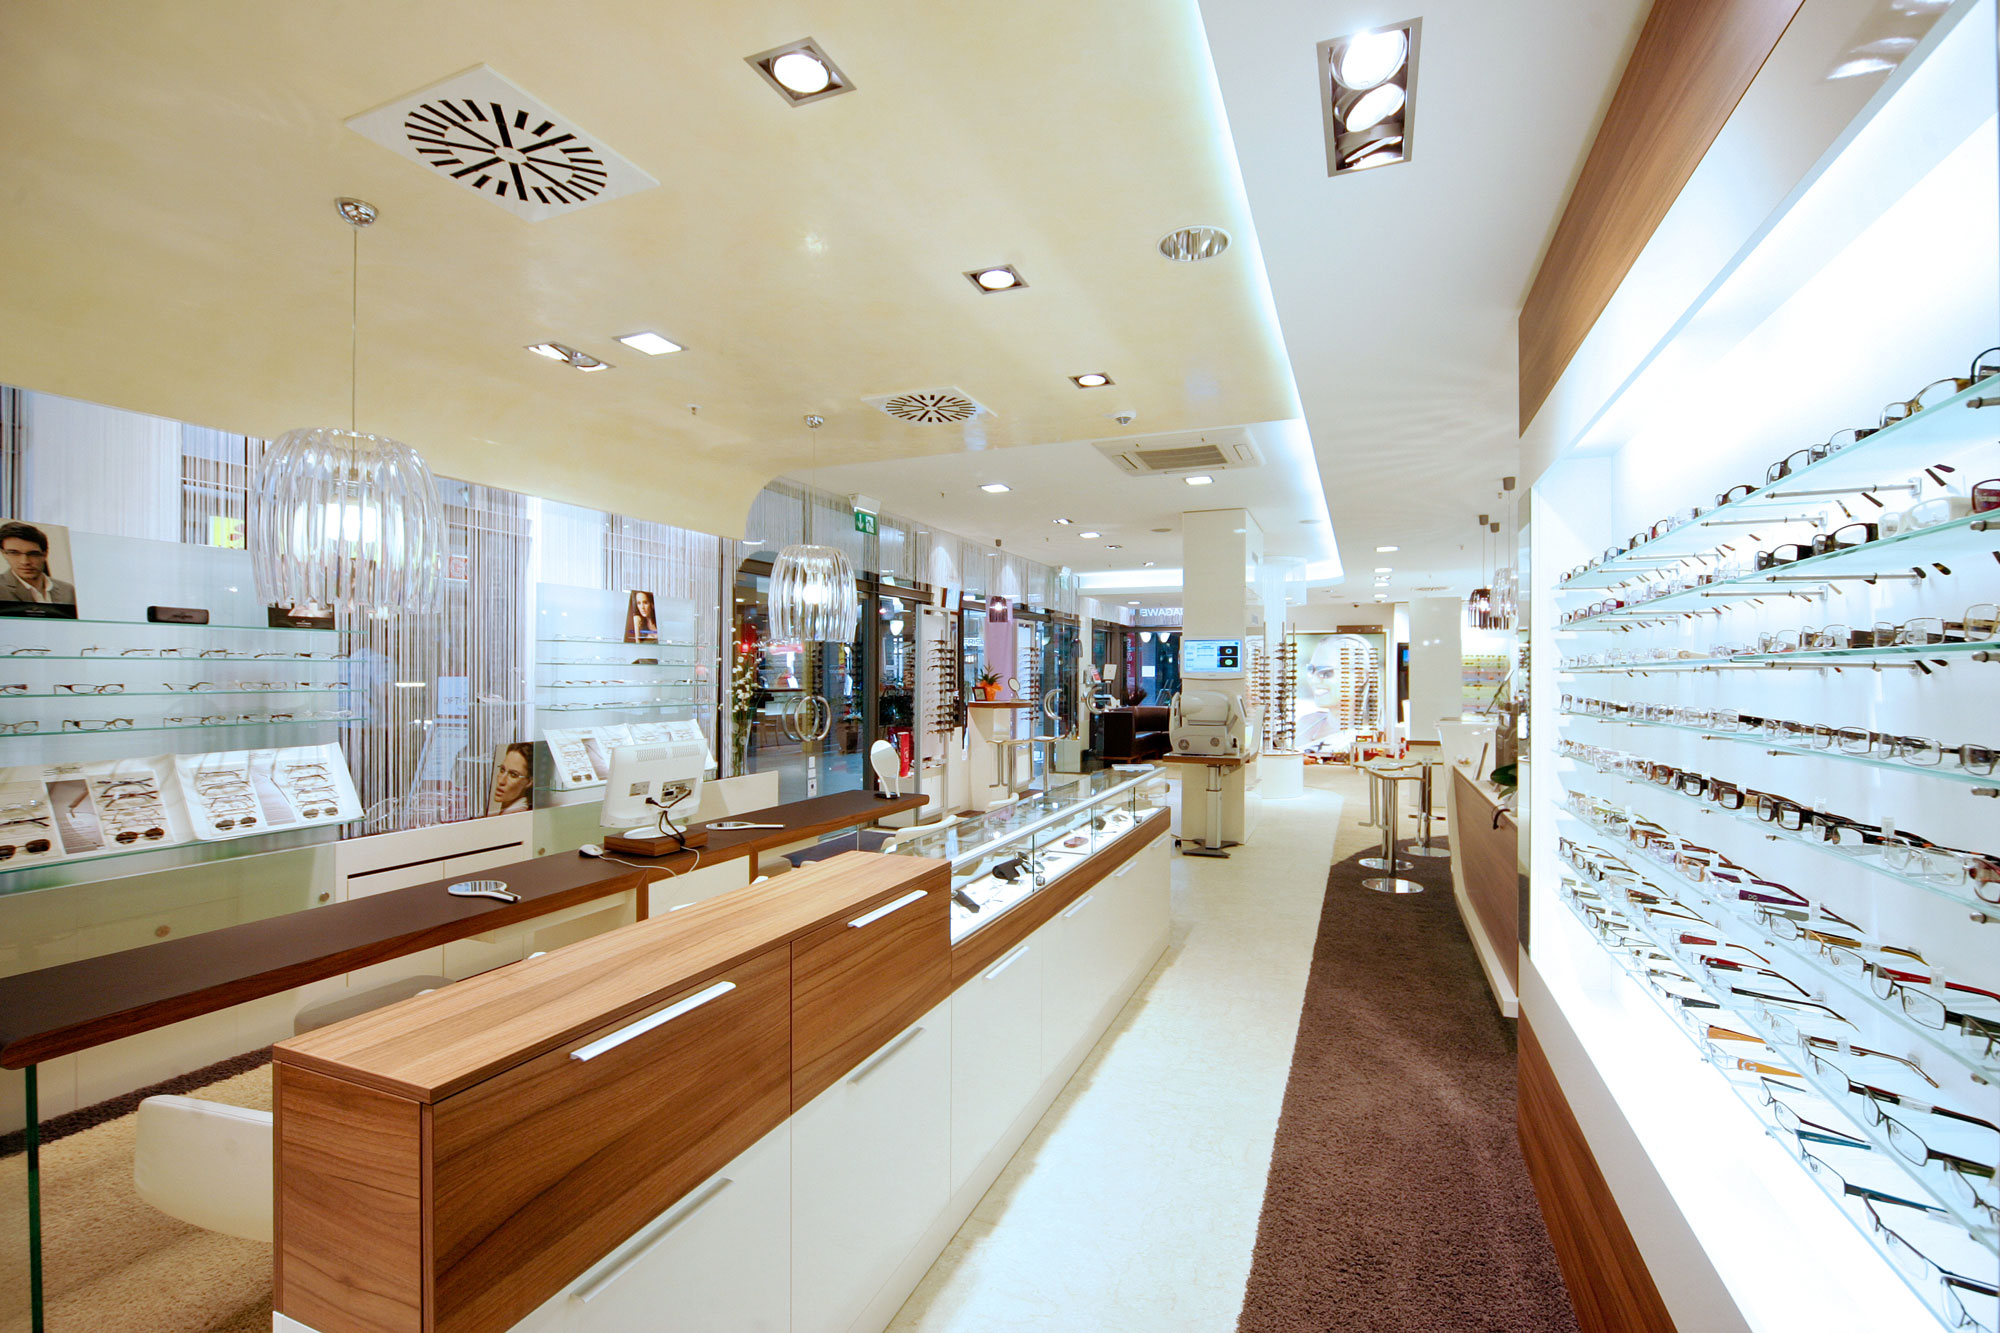 Optik Sagawe im Doberaner Hof - Blick in den Laden - ist das Zeiss Vision Center in Rostock